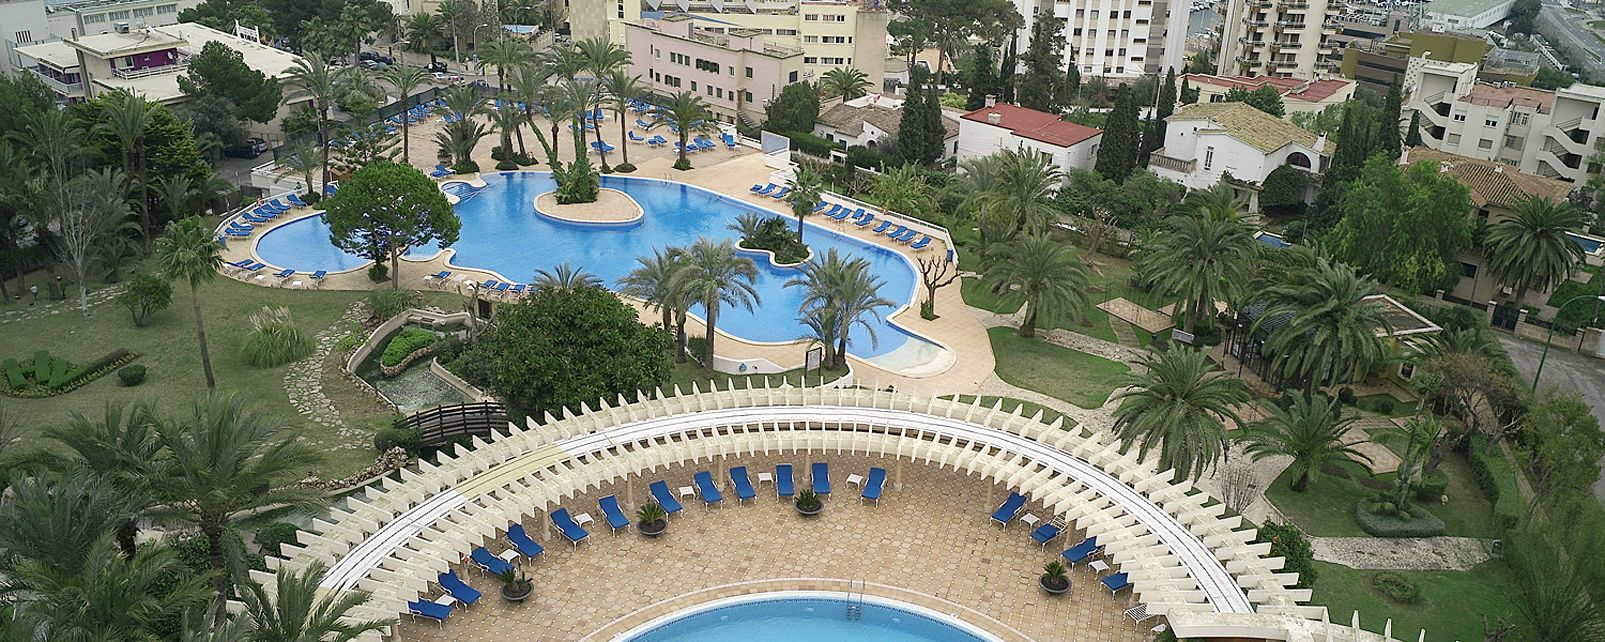 Hotel Grupotel Valpara�so Palace